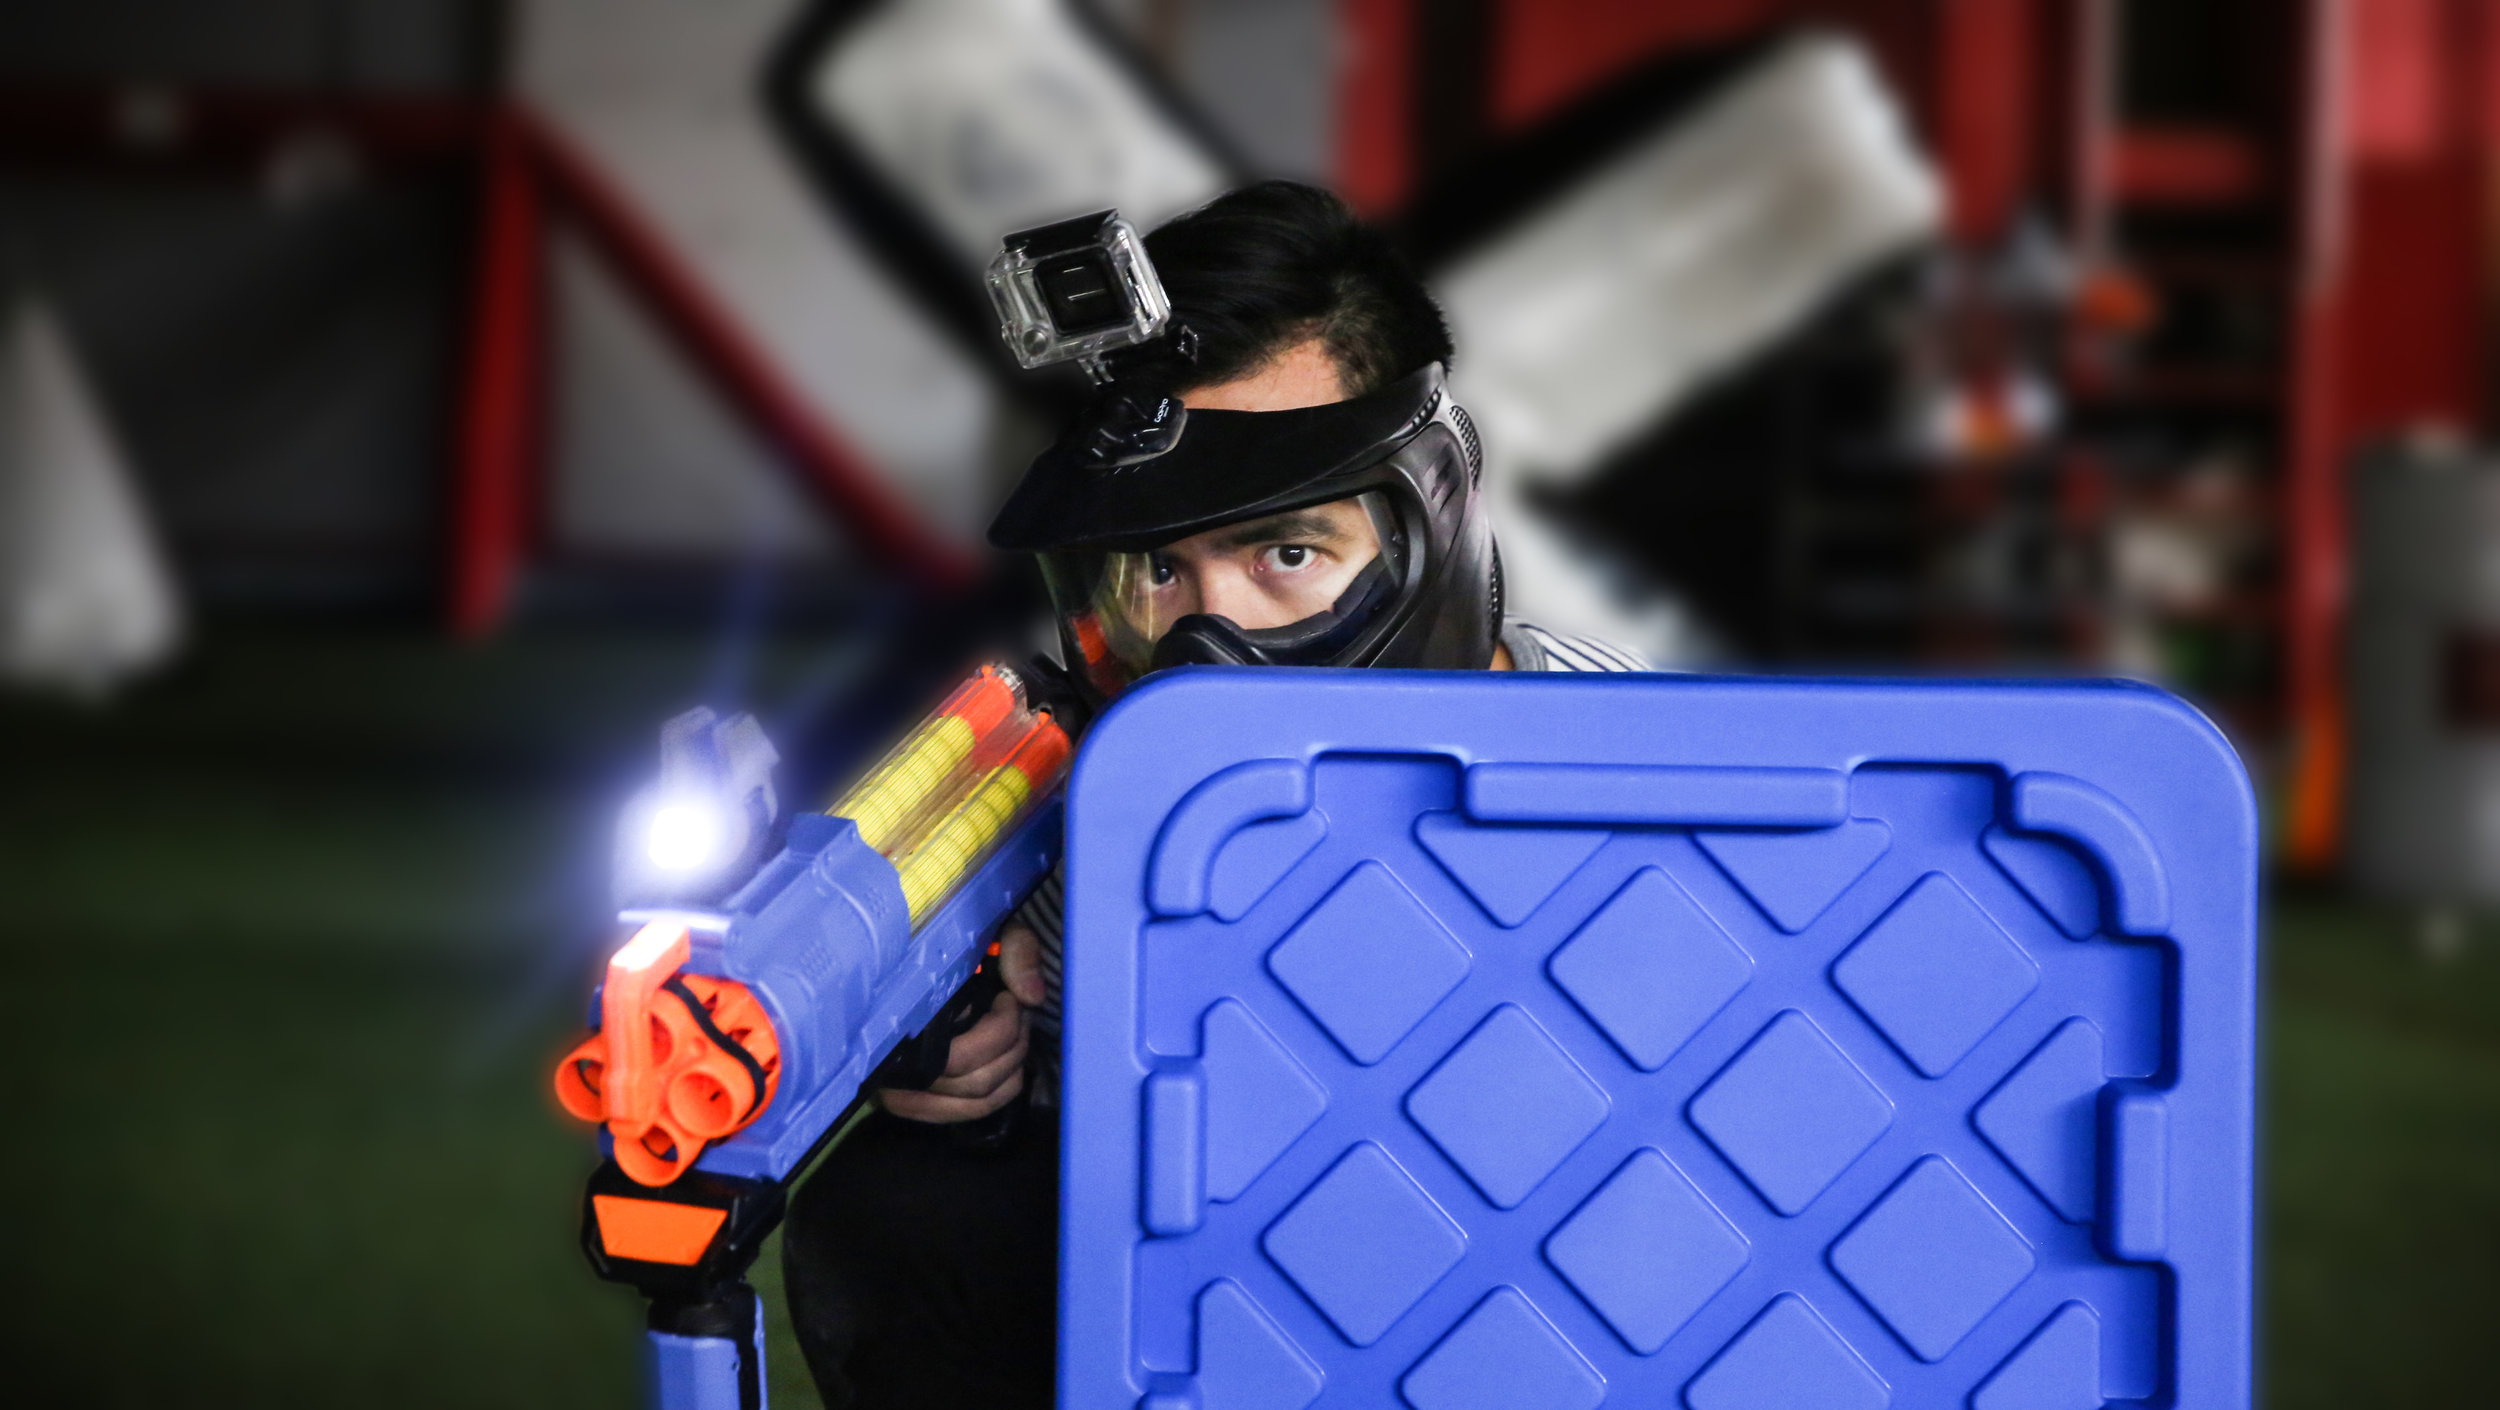 Nerf Wars Toronto Tactical Shield Archers Arena